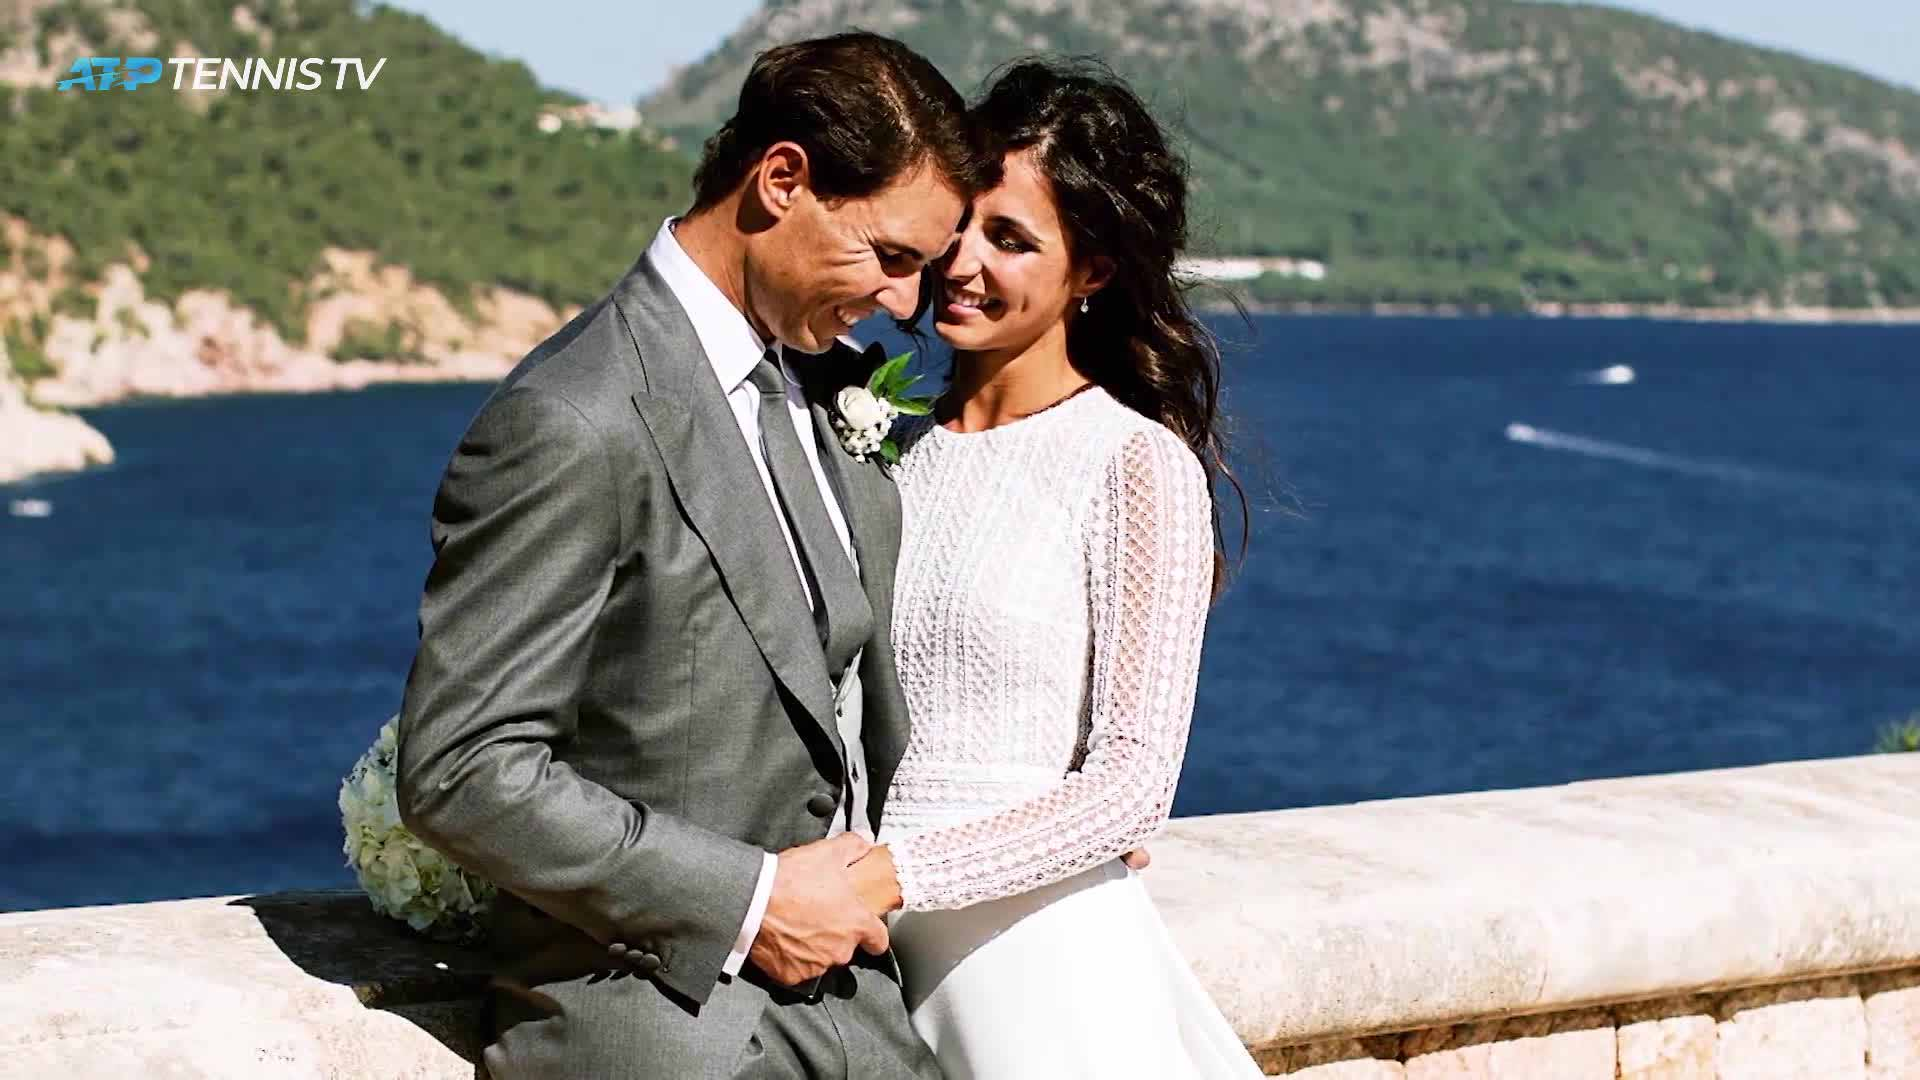 <a href='https://www.atptour.com/en/players/rafael-nadal/n409/overview'>Rafael Nadal</a> and Maria Francisca Perello wed on 19 October in Mallorca.